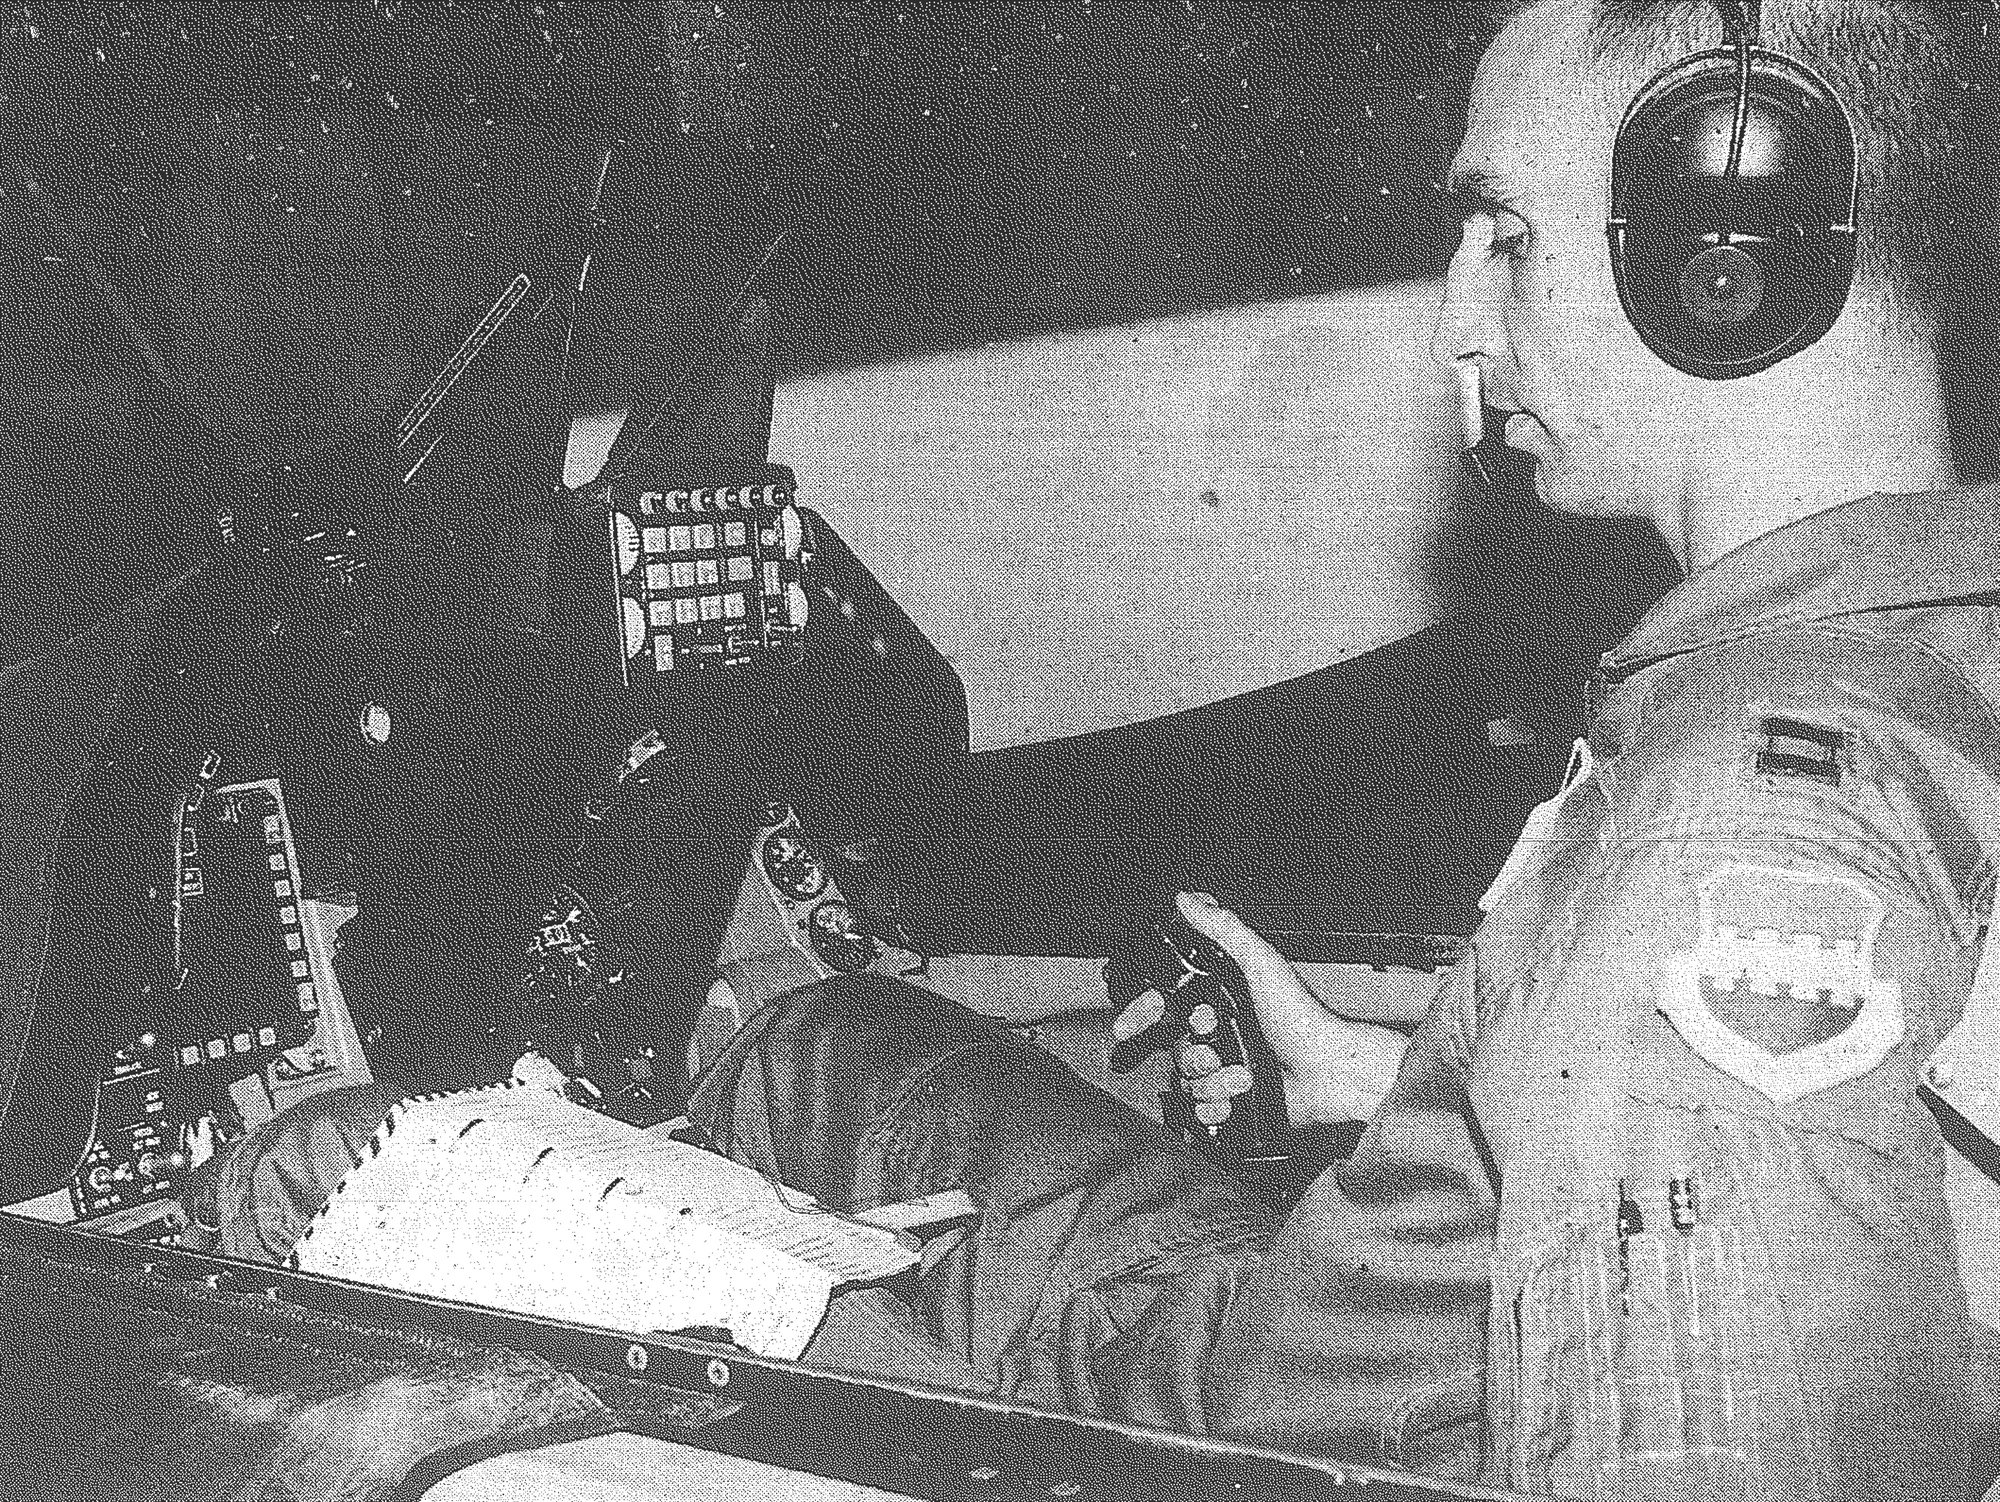 1994 - Capt. Scott Zobrist prepares for a simulator flight at Shaw Air Force Base on July 21, 1994. The simulator is used to help pilots train for emergency situations, practice tactics and do instrument flying, such as they would in bad weather. Maj. Gen. Zobrist officially retired June 13, 2019, from a three-decade military career and passed command of the 9th Air Force to Gen. Chad Franks at an official change of command ceremony. Zobrist and his wife will retire in Sumter.